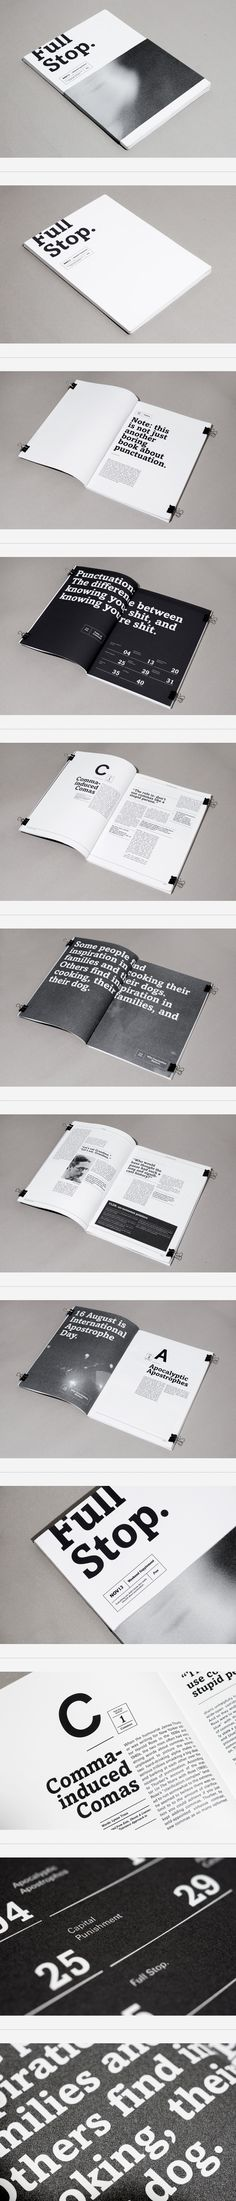 ZINE. Simple black and white, but nice range of text layouts - JB